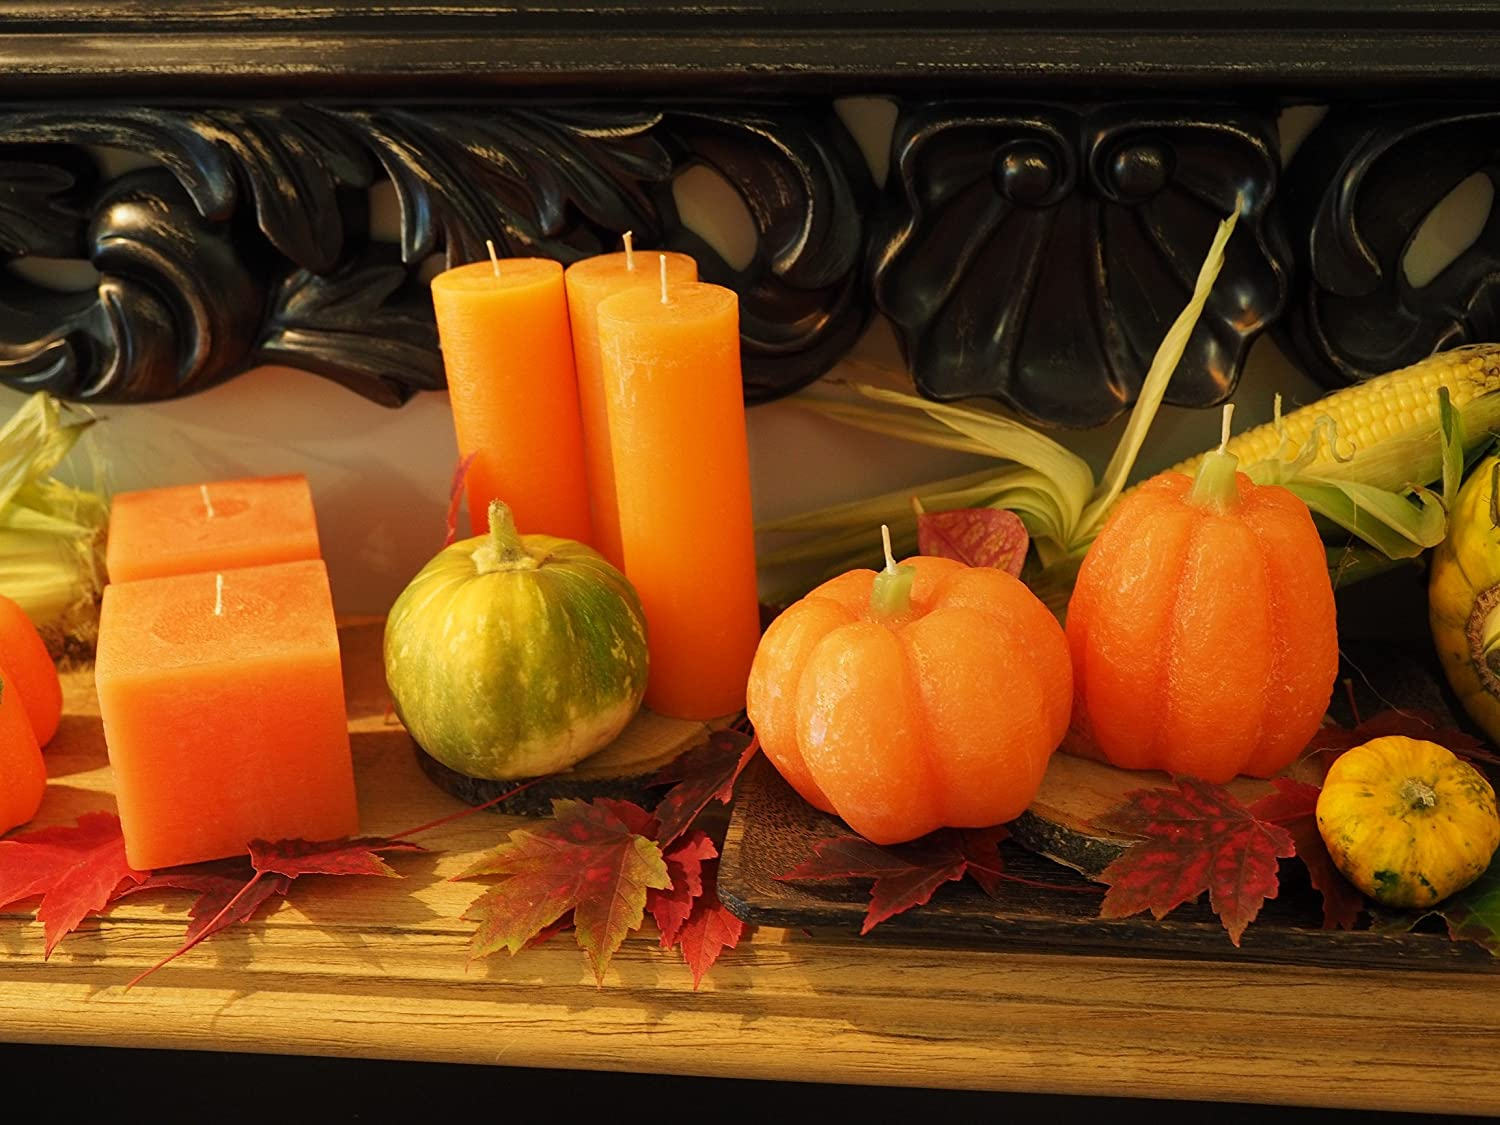 Set of 2 Candle Atelier Large Pumpkin Handmade Cast Candles Fragrance-Free